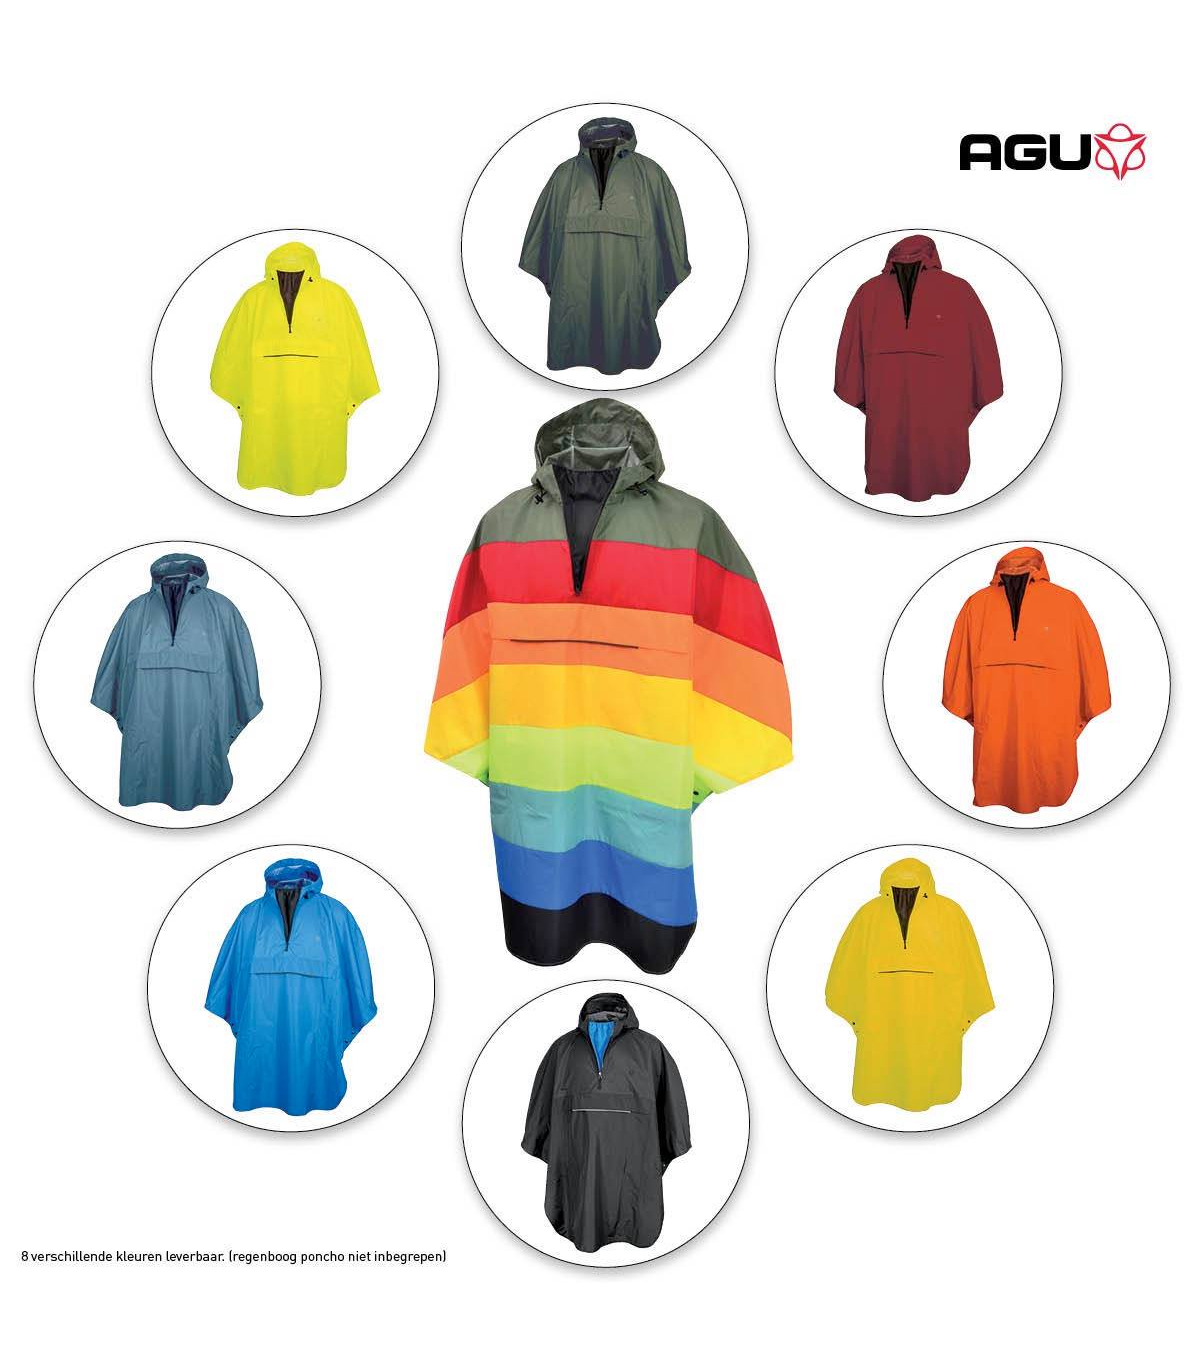 Regenponcho Kopen Agu Official Shop Agu Regenponcho Collectie Love For Rain Nl